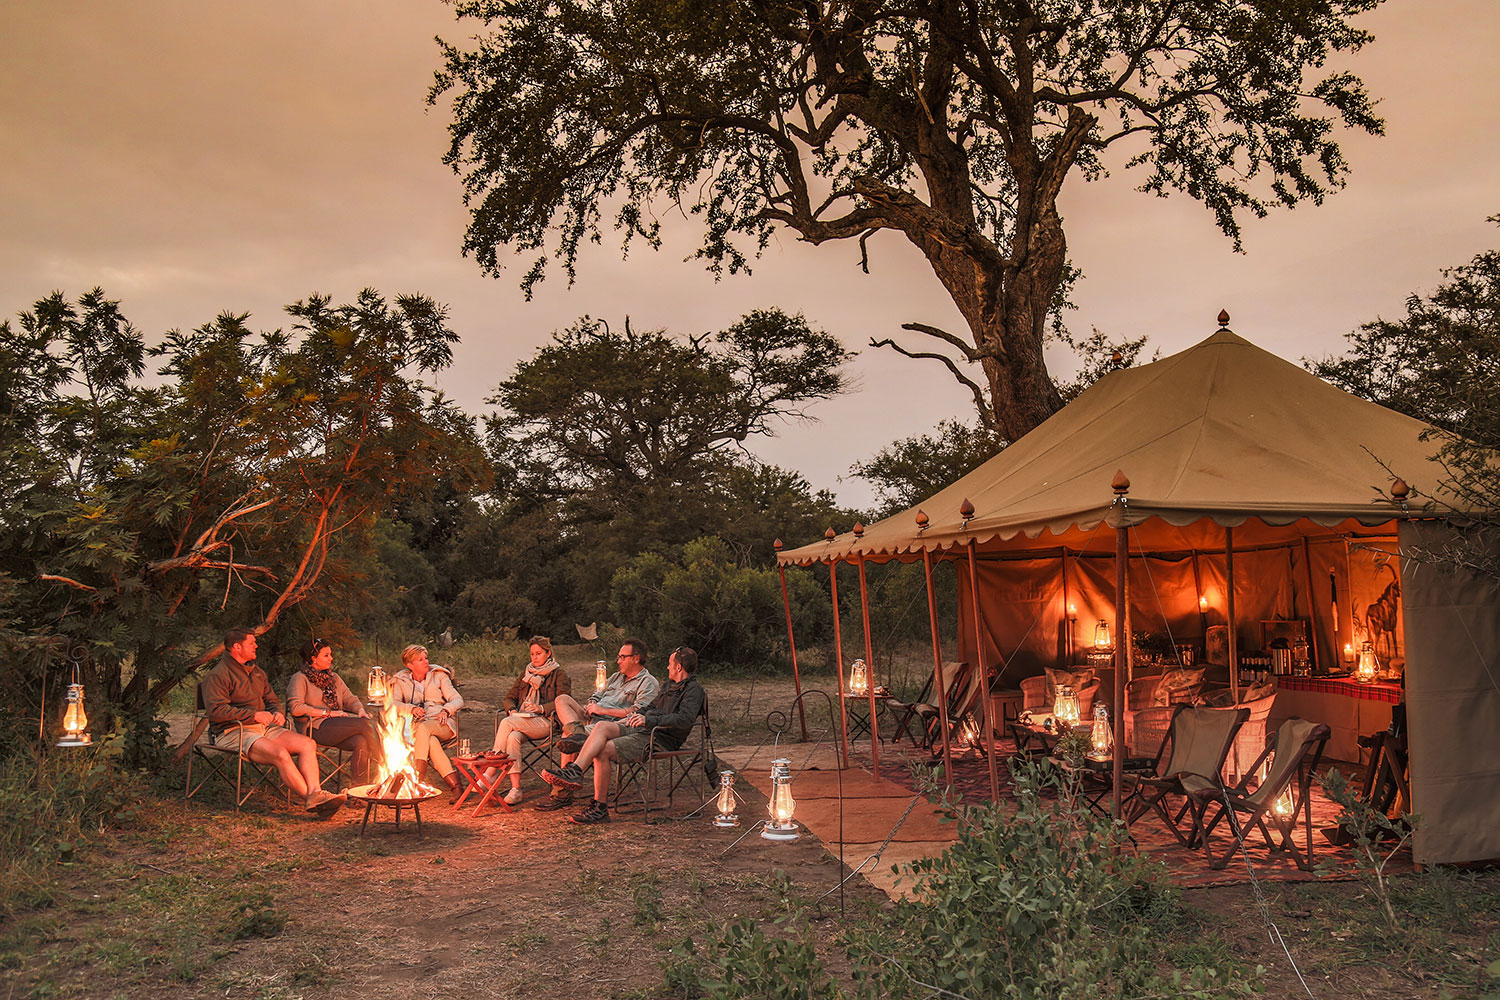 Tanda Tula Field Camp - sitting around the fire on safari in South Africa